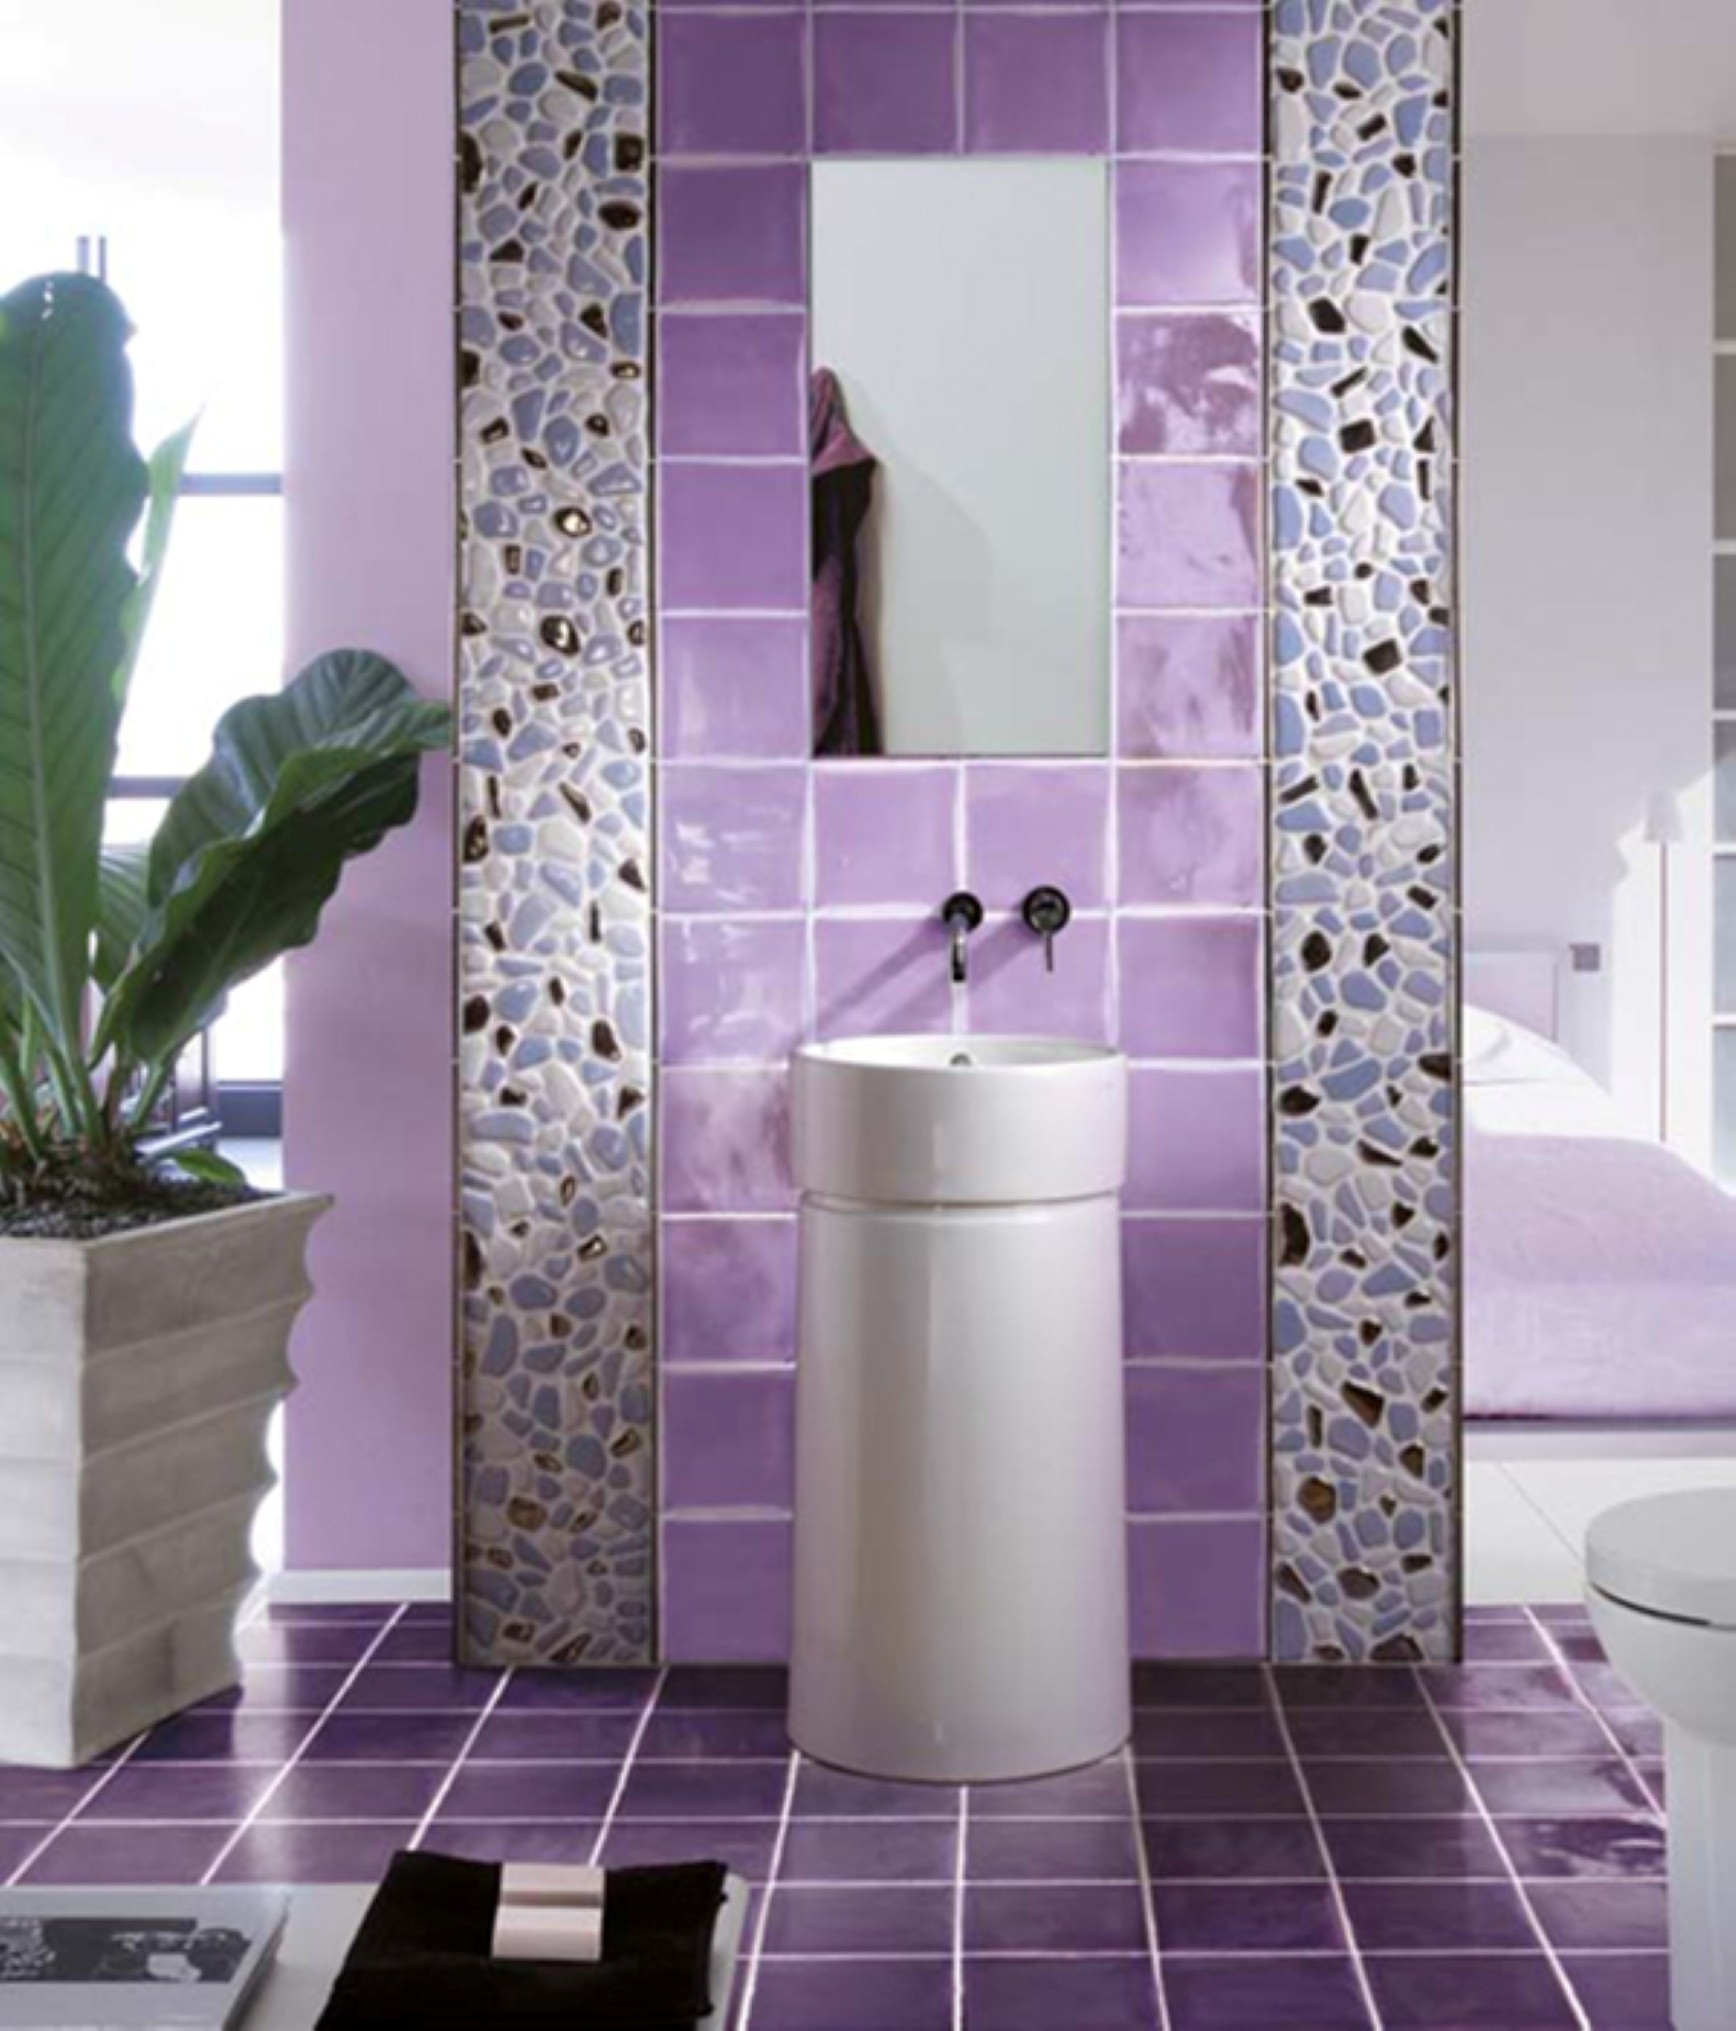 Stylish Bathroom Tile Design Ideas For Astonishing Design Ideas With Great Exclusive Design Of Bathroom (View 6 of 23)